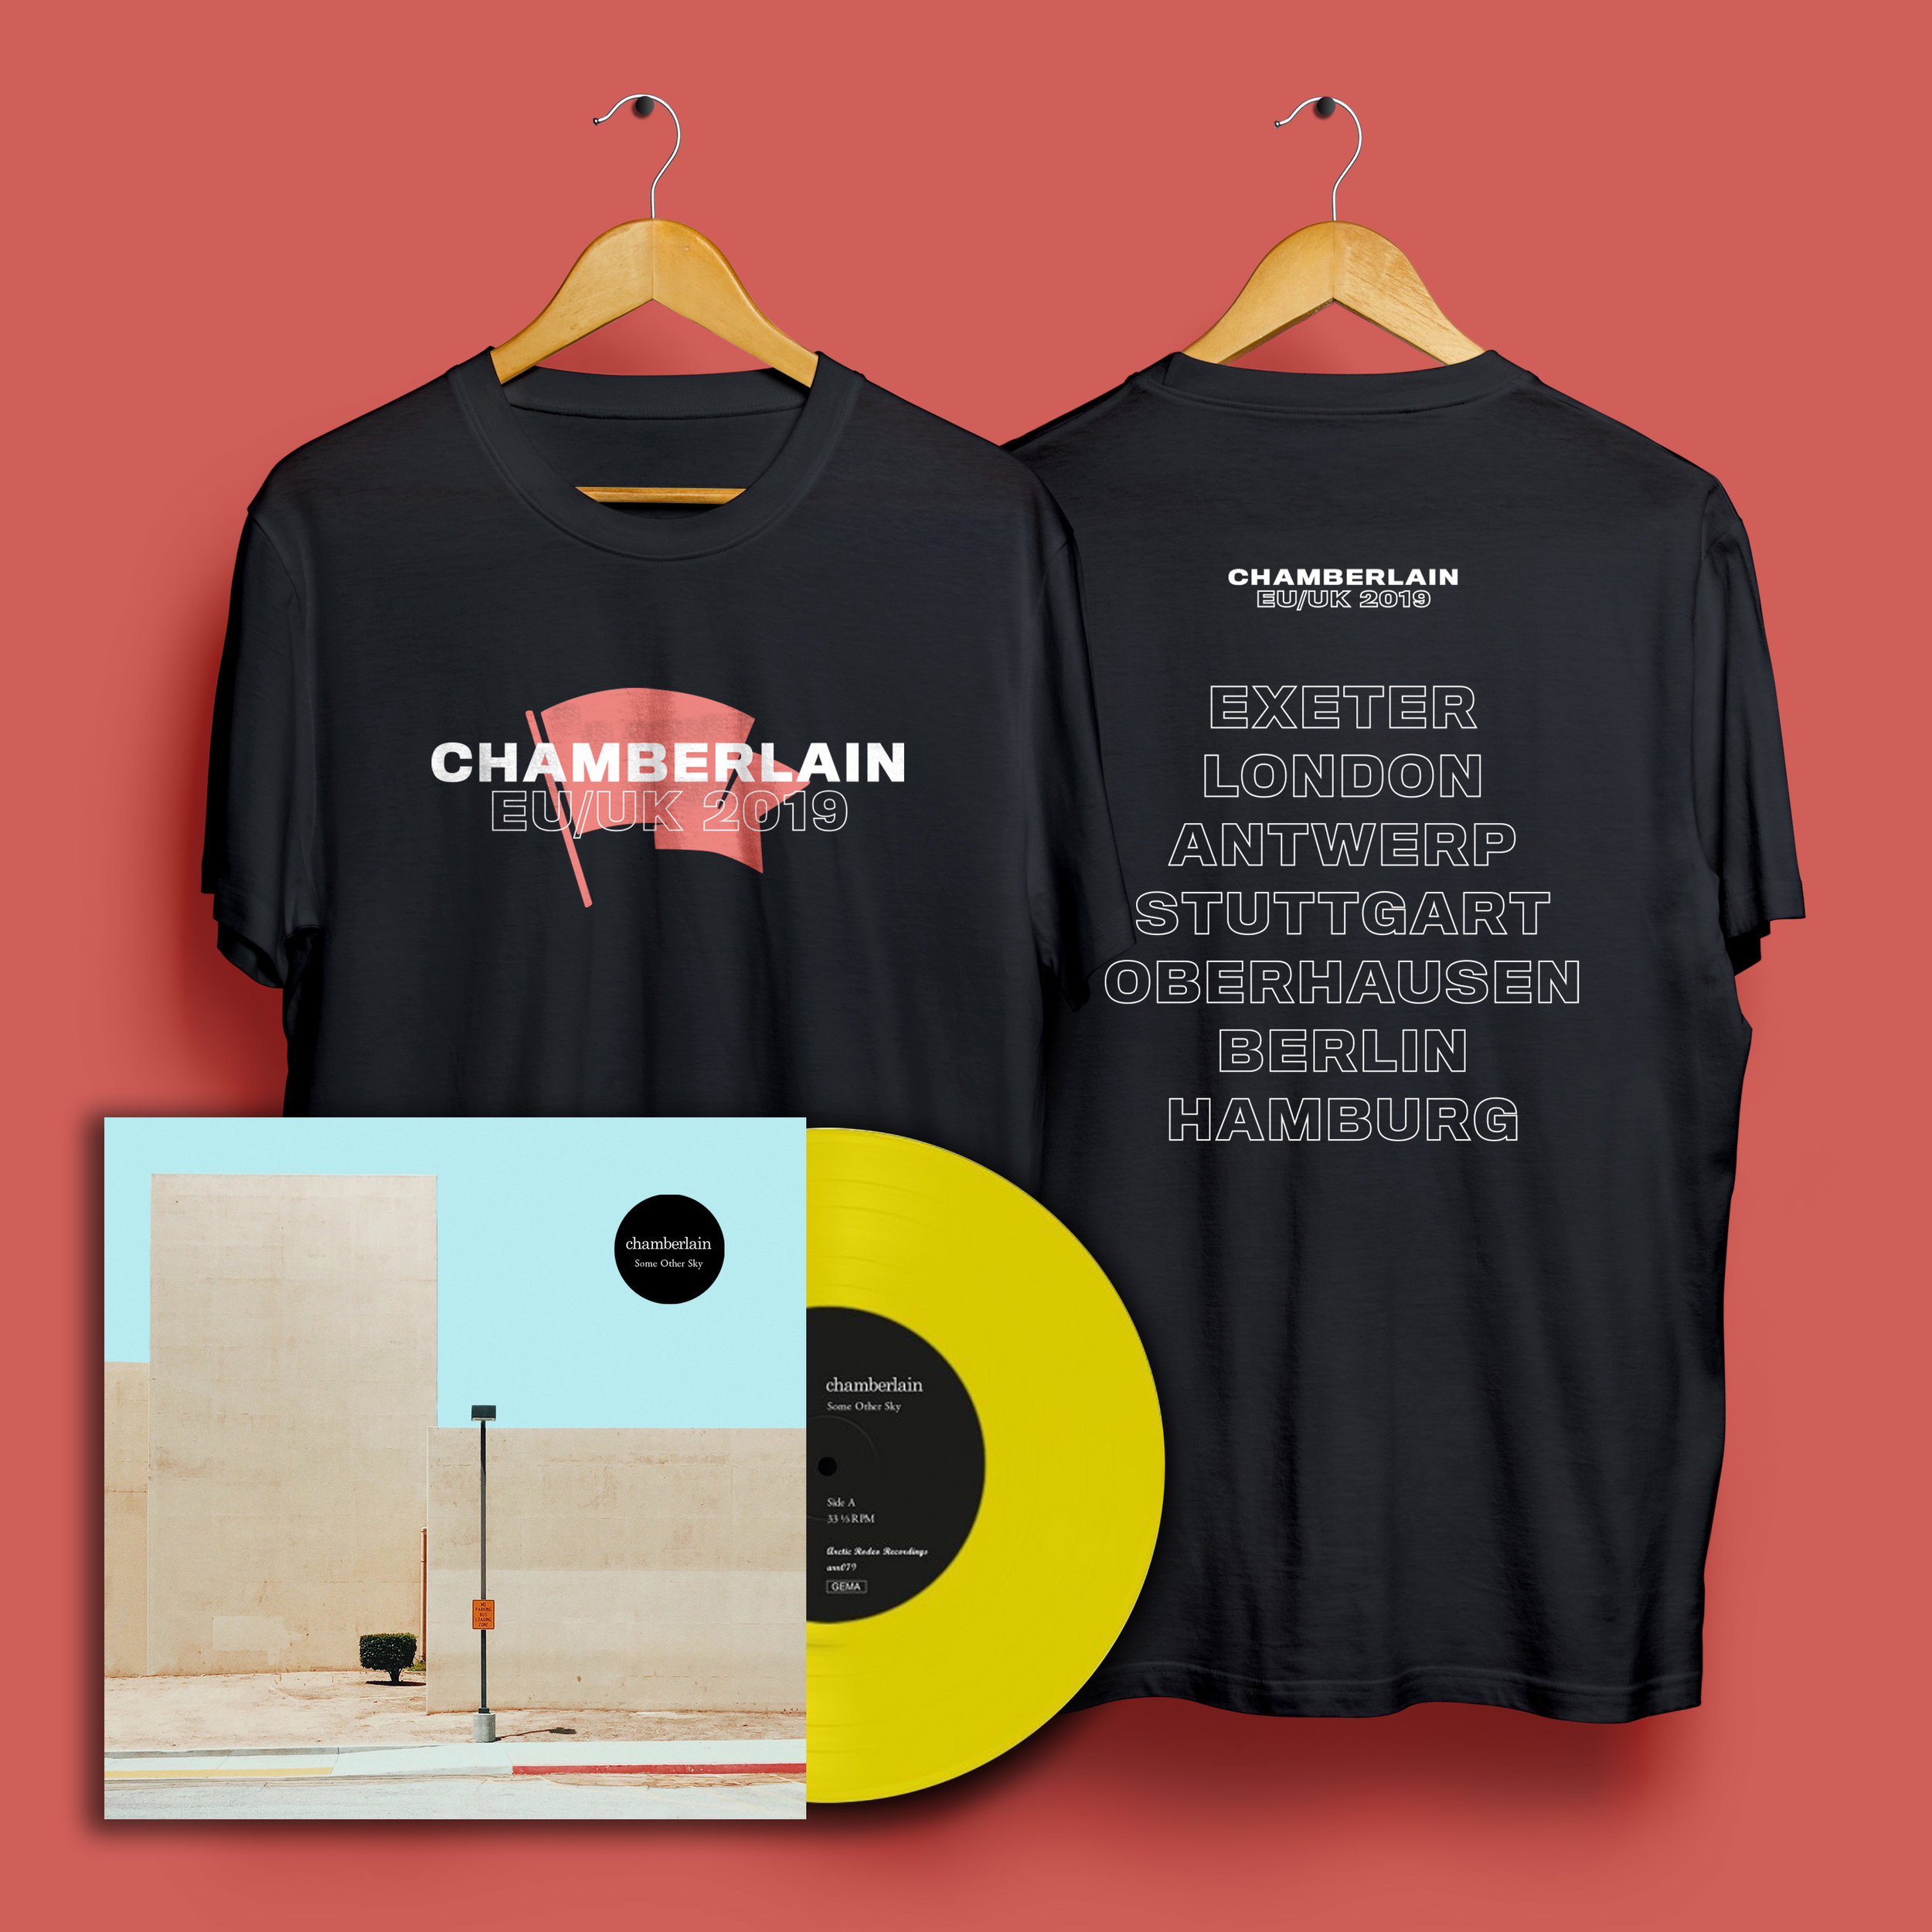 UK/EU 2019 Tour Bundle